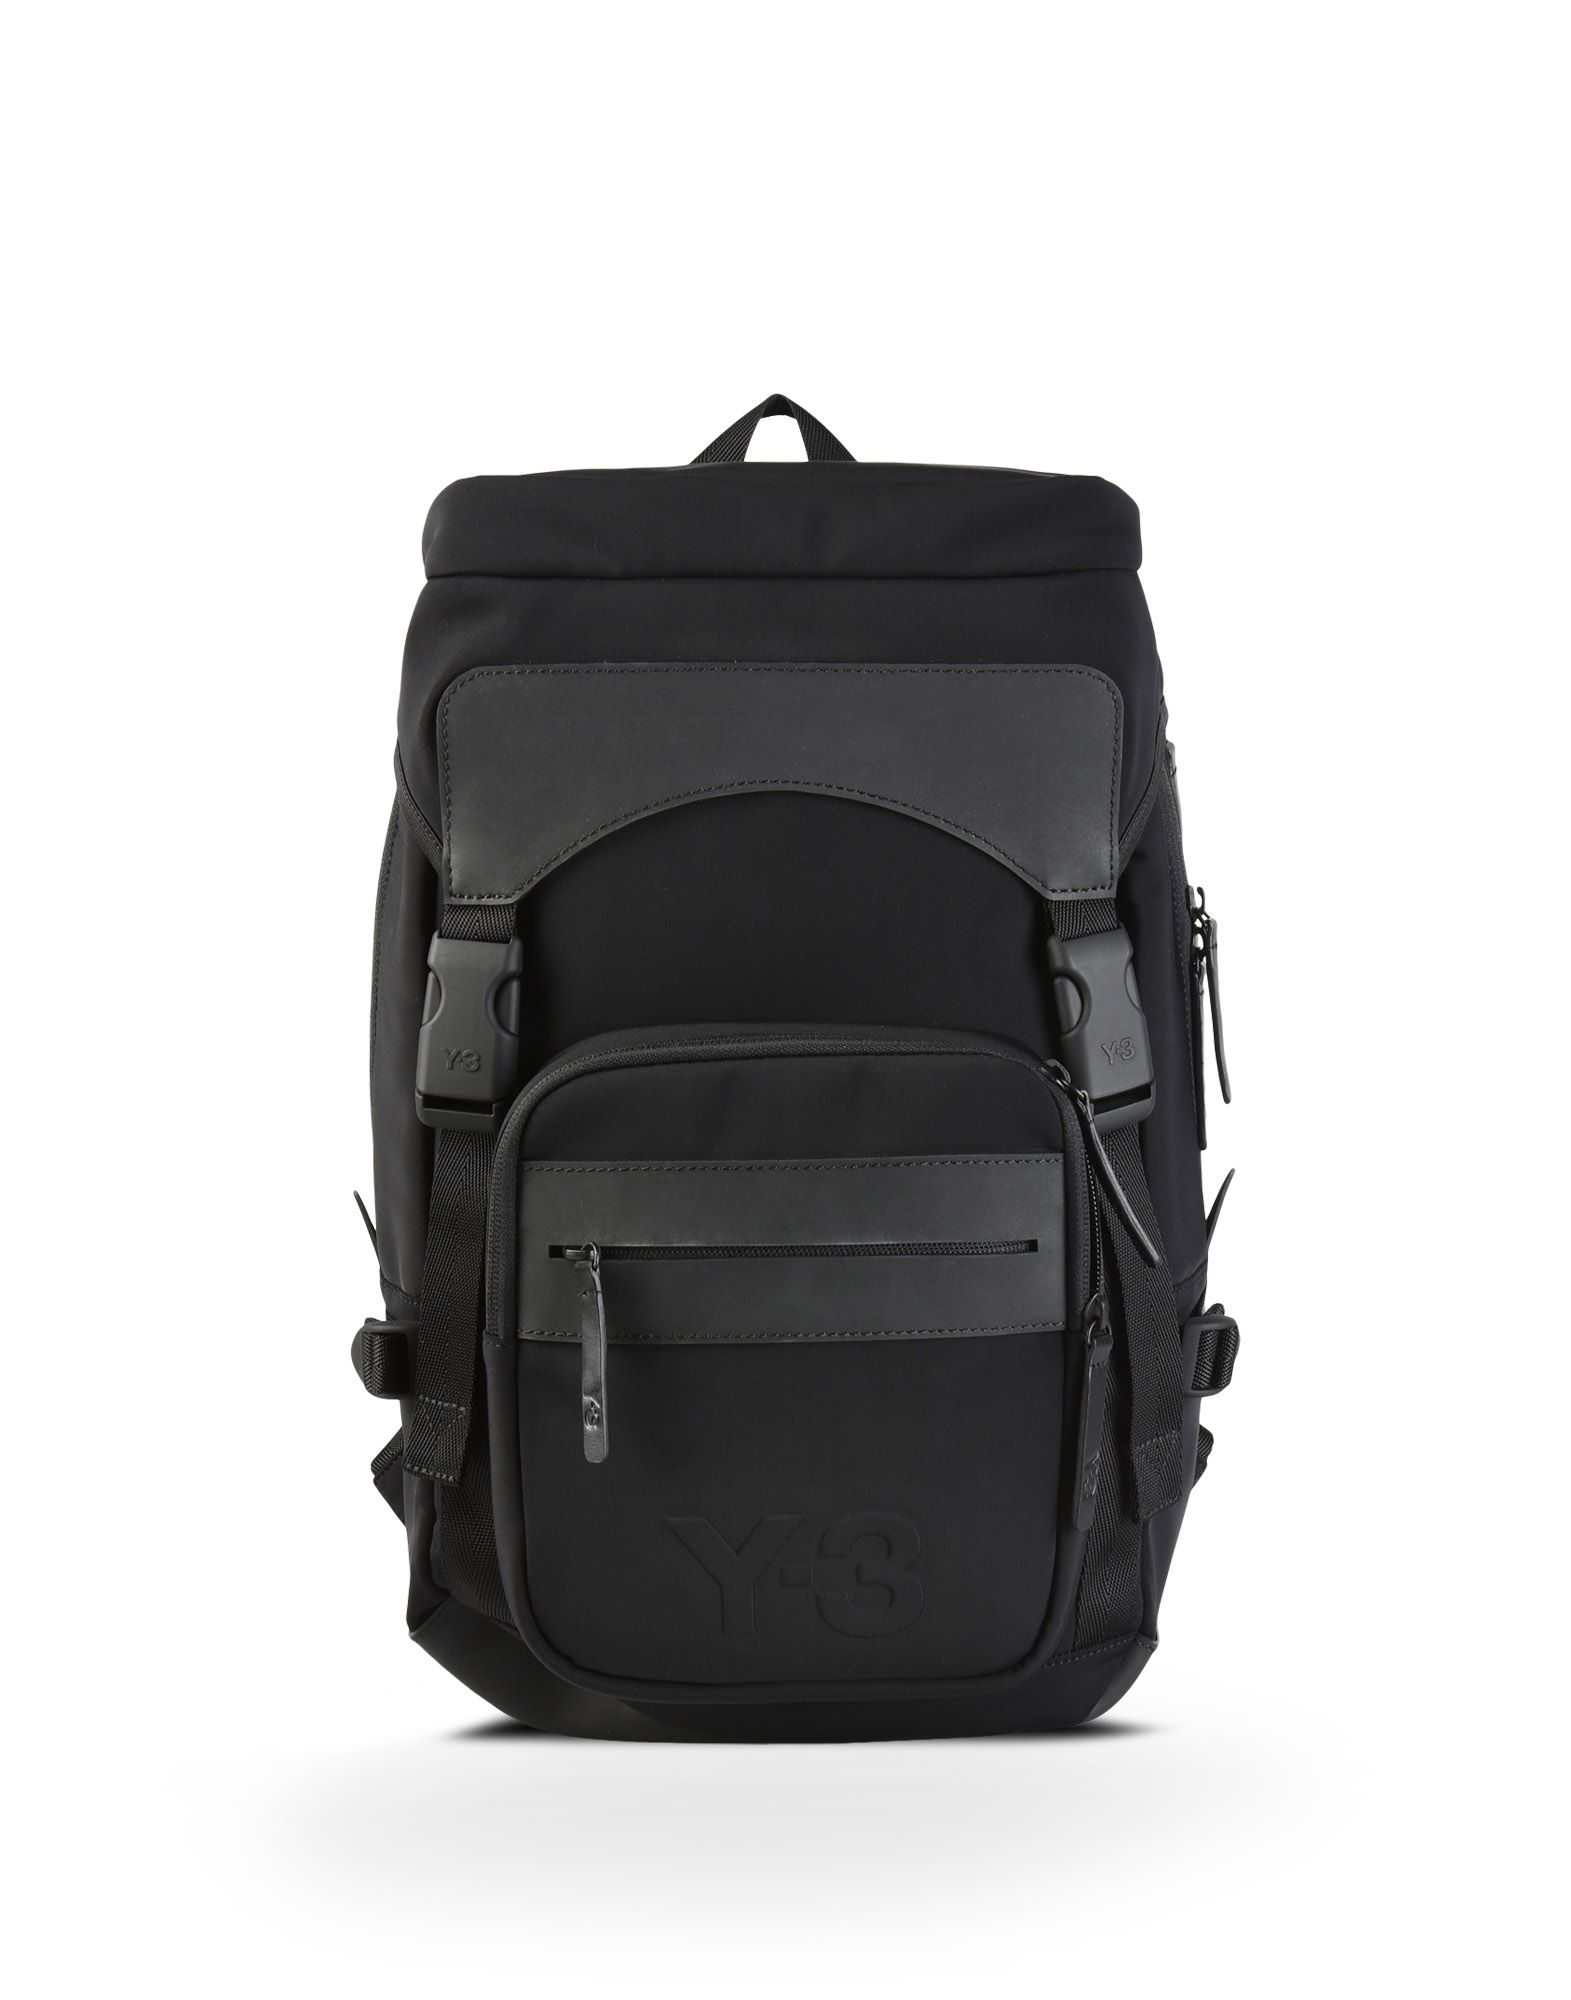 a8c0753a4c66 ... Y-3 Y-3 ULTRATECH BAG SMALL Backpack E f ...